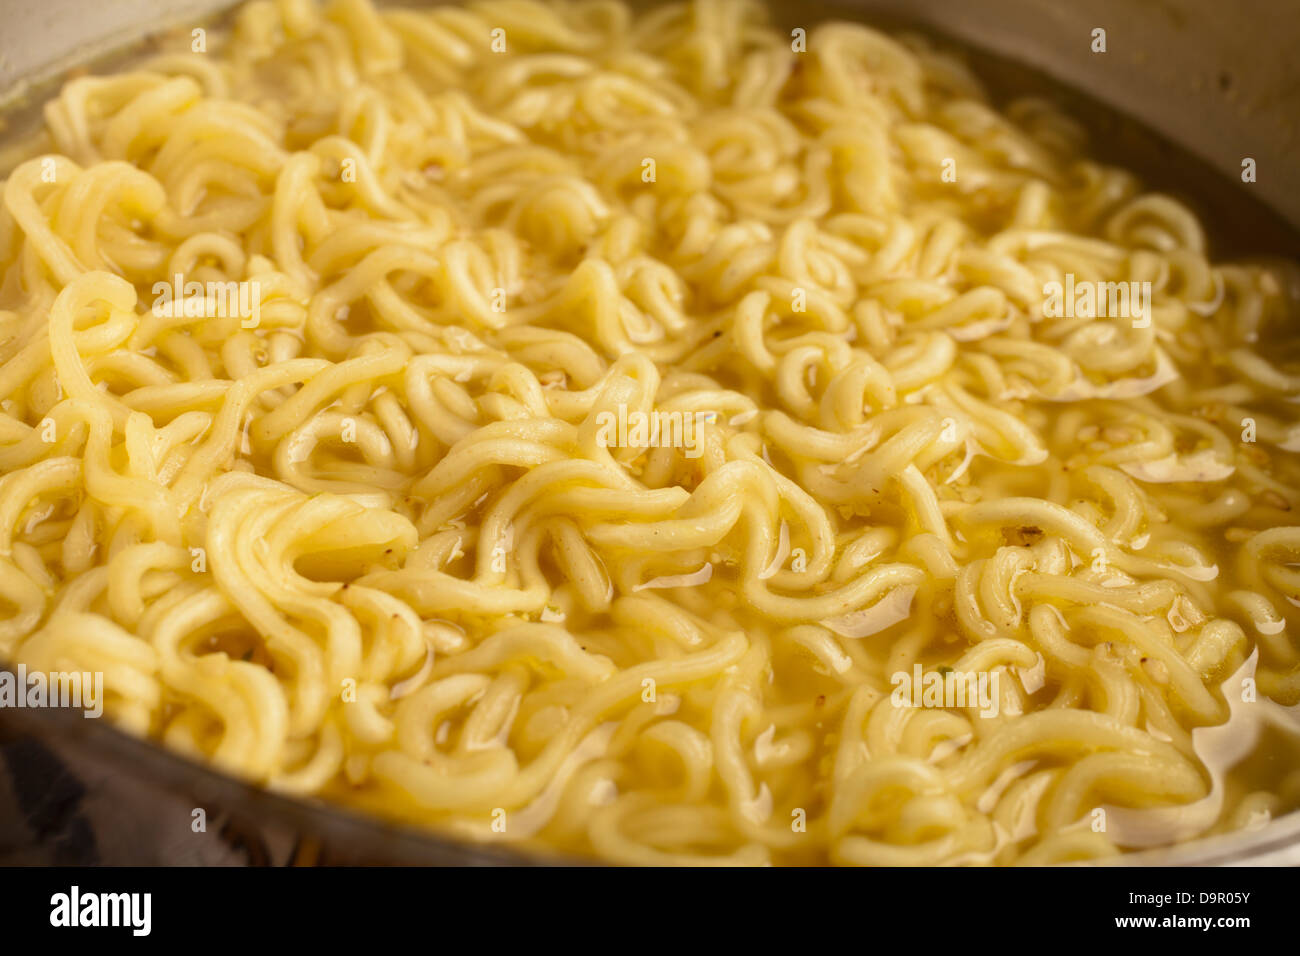 Instant Ramen cooking in a pot - Stock Image